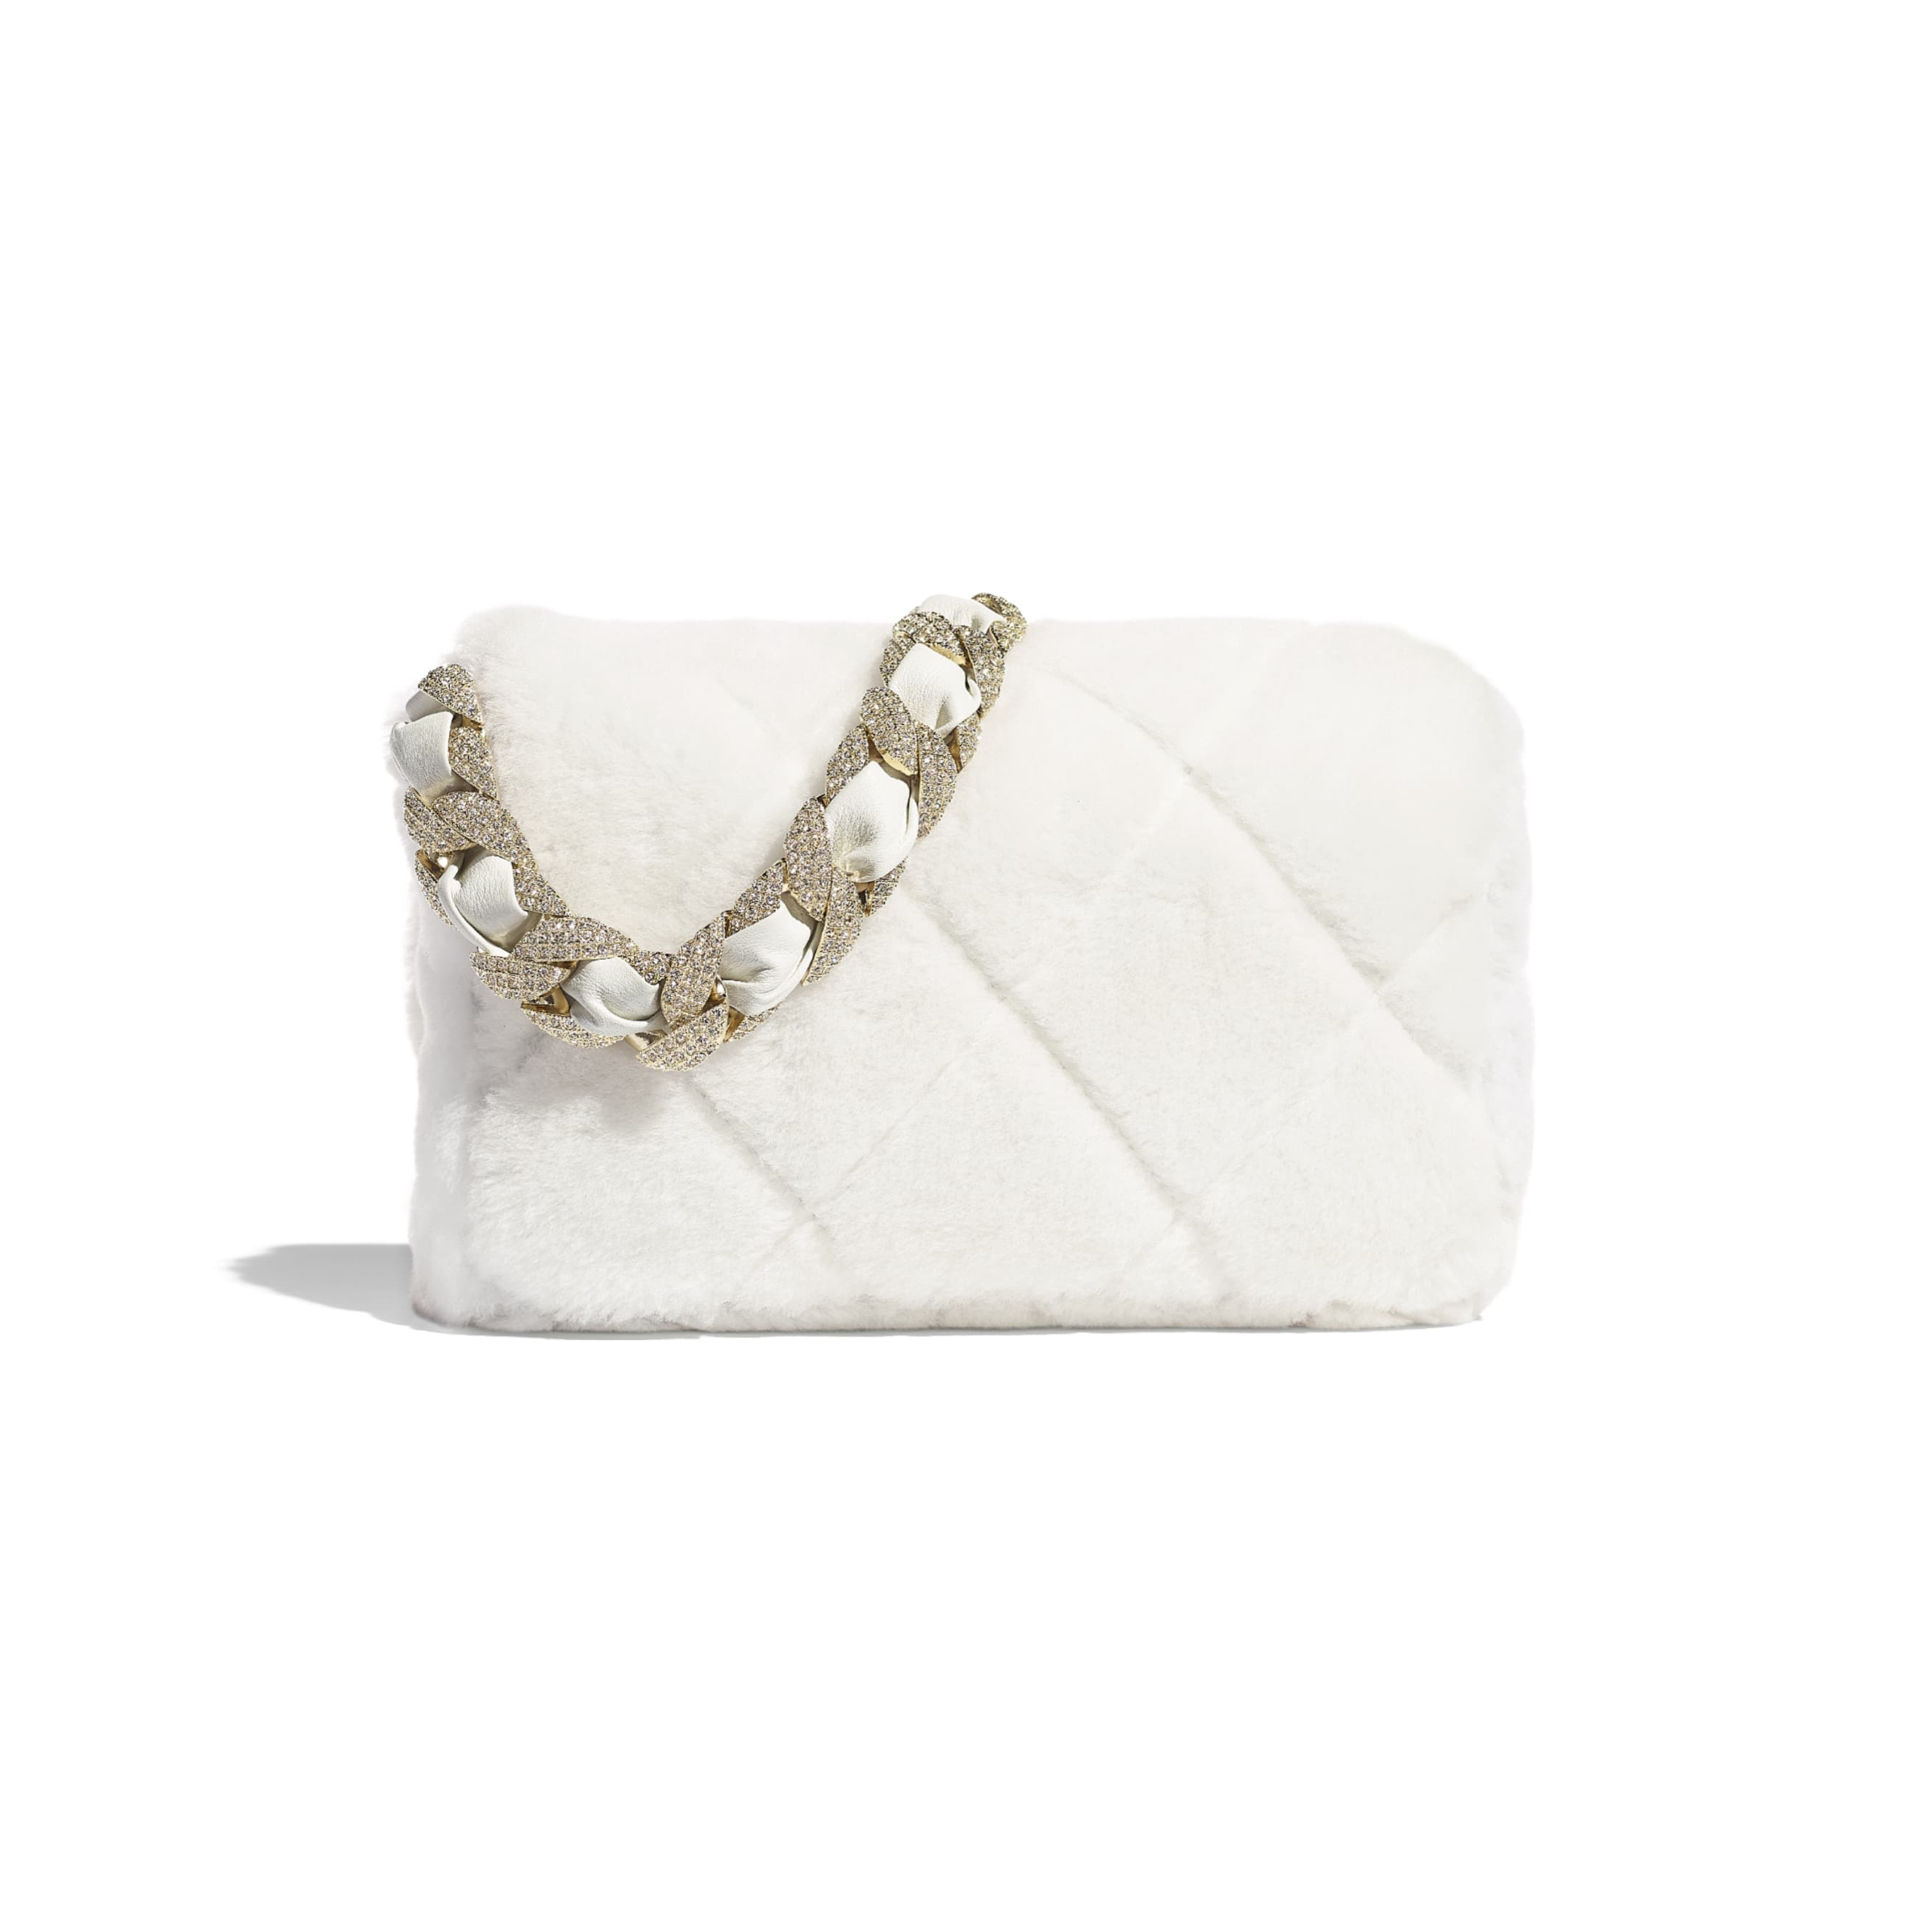 Flap Bag - White - Shearling Lambskin, Strass & Gold-Tone Metal - CHANEL - Alternative view - see standard sized version